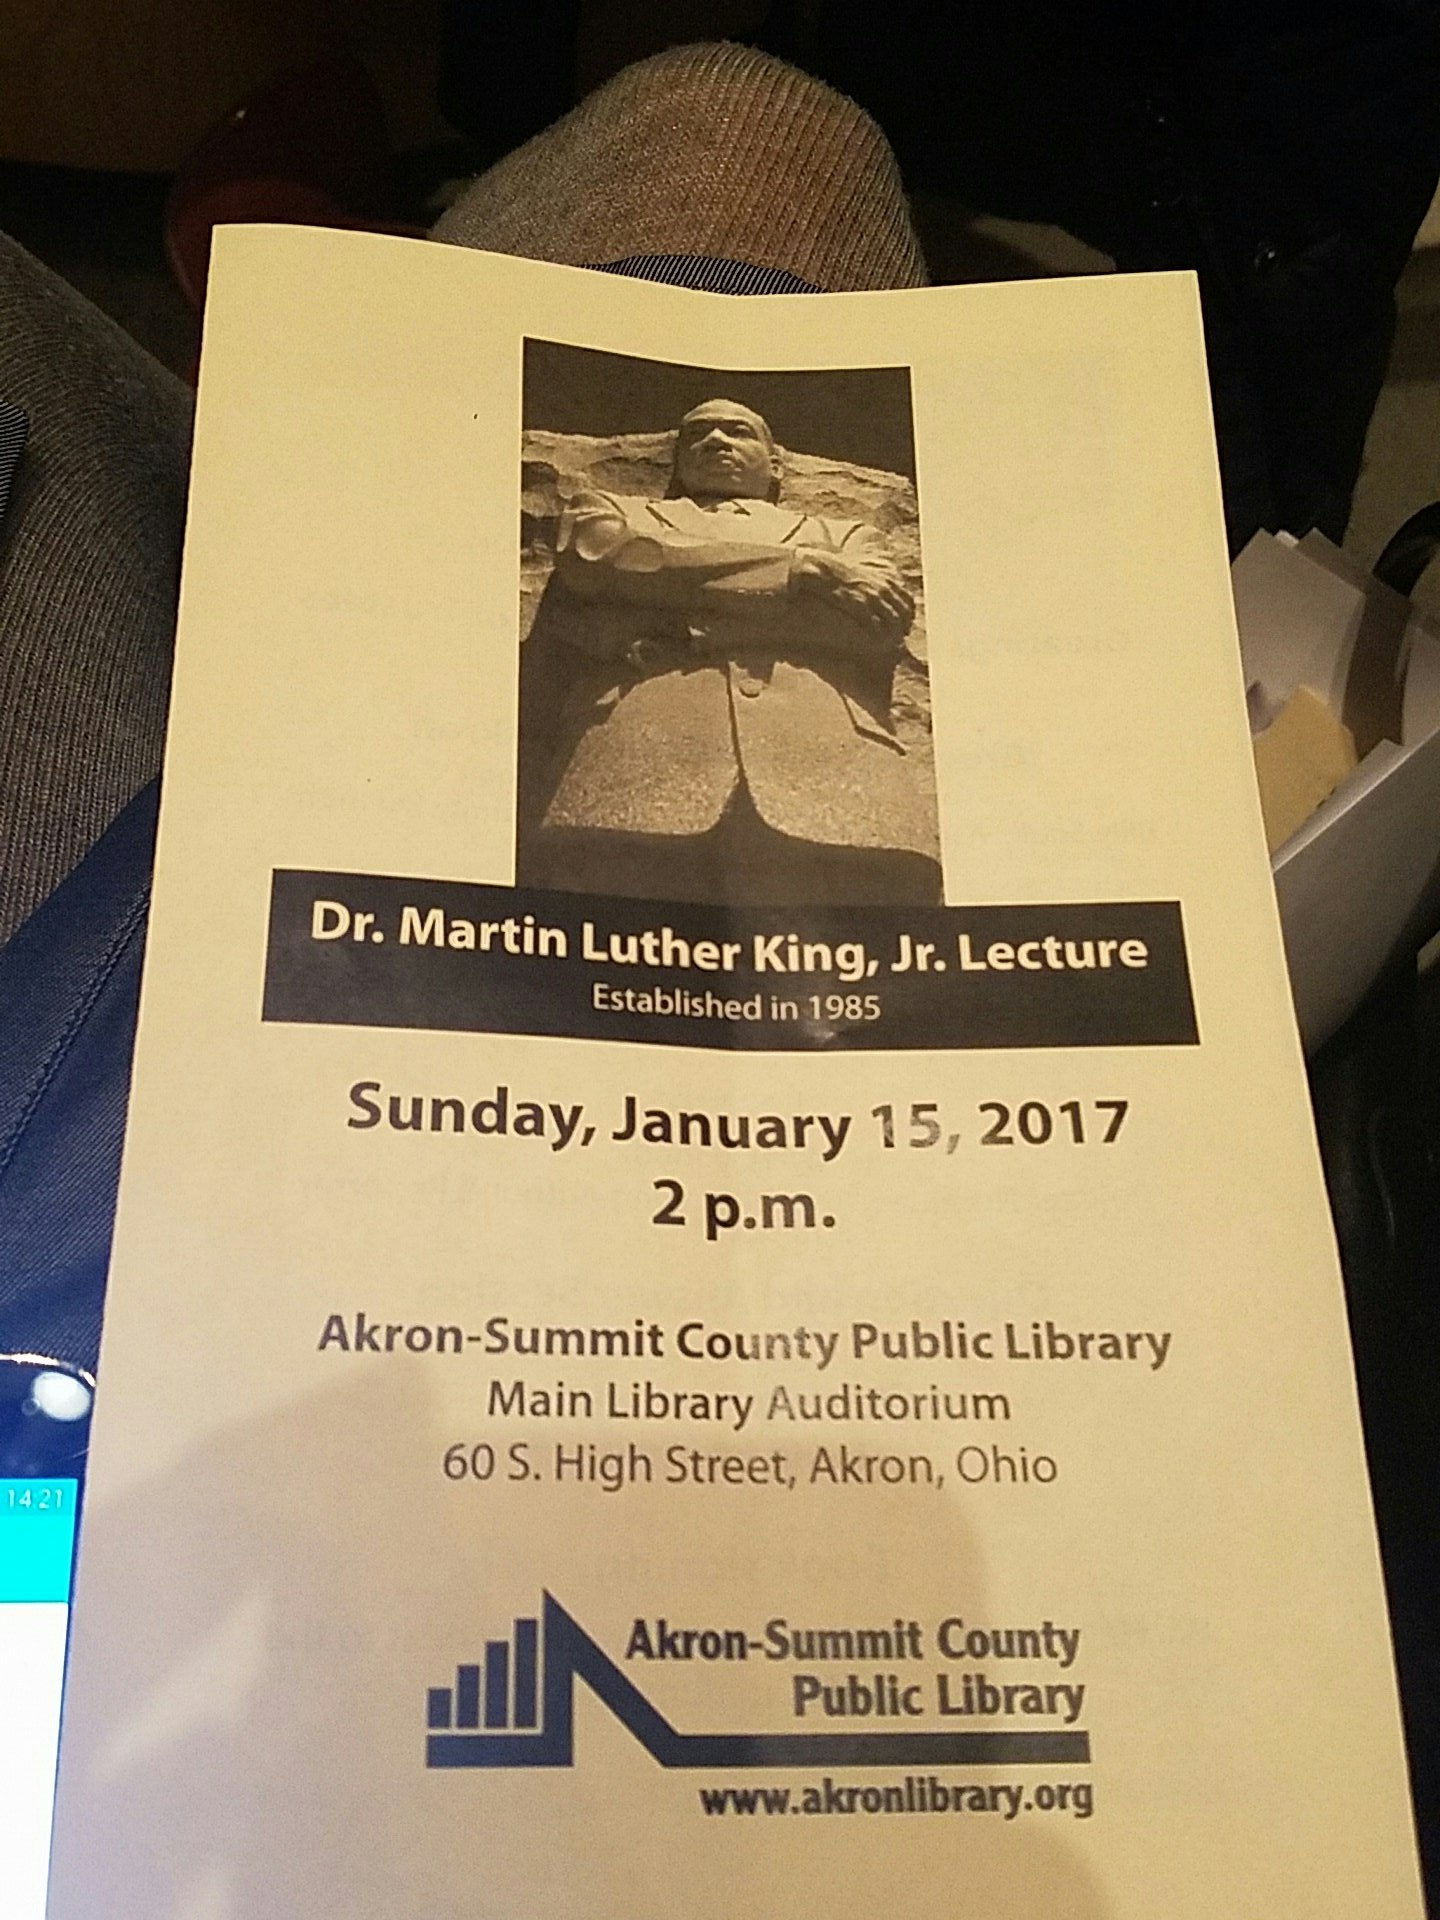 In celebration of Martin Luther King Jr. Welcome to Akron Wil Haygood. https://t.co/dXf3Vi5r9i